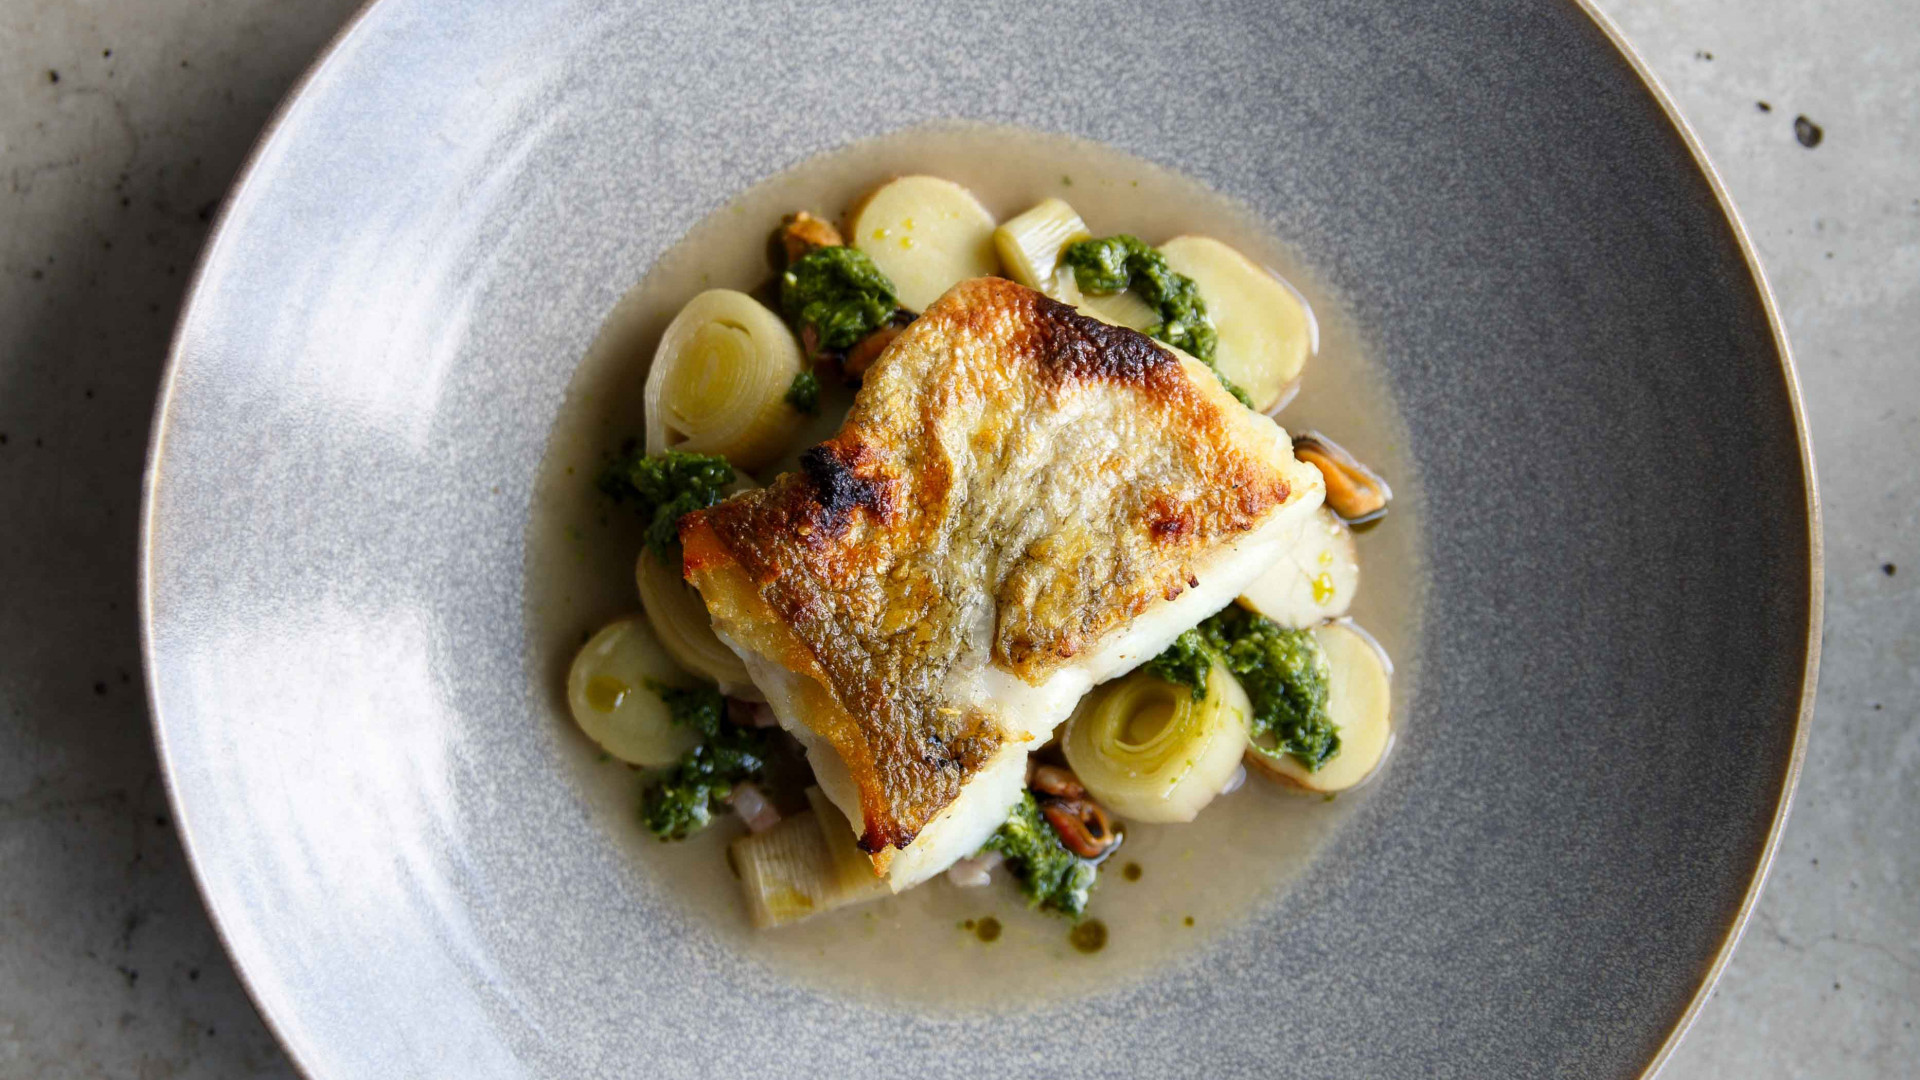 Cod 'chowder' with mussels, leeks, bacon and lovage